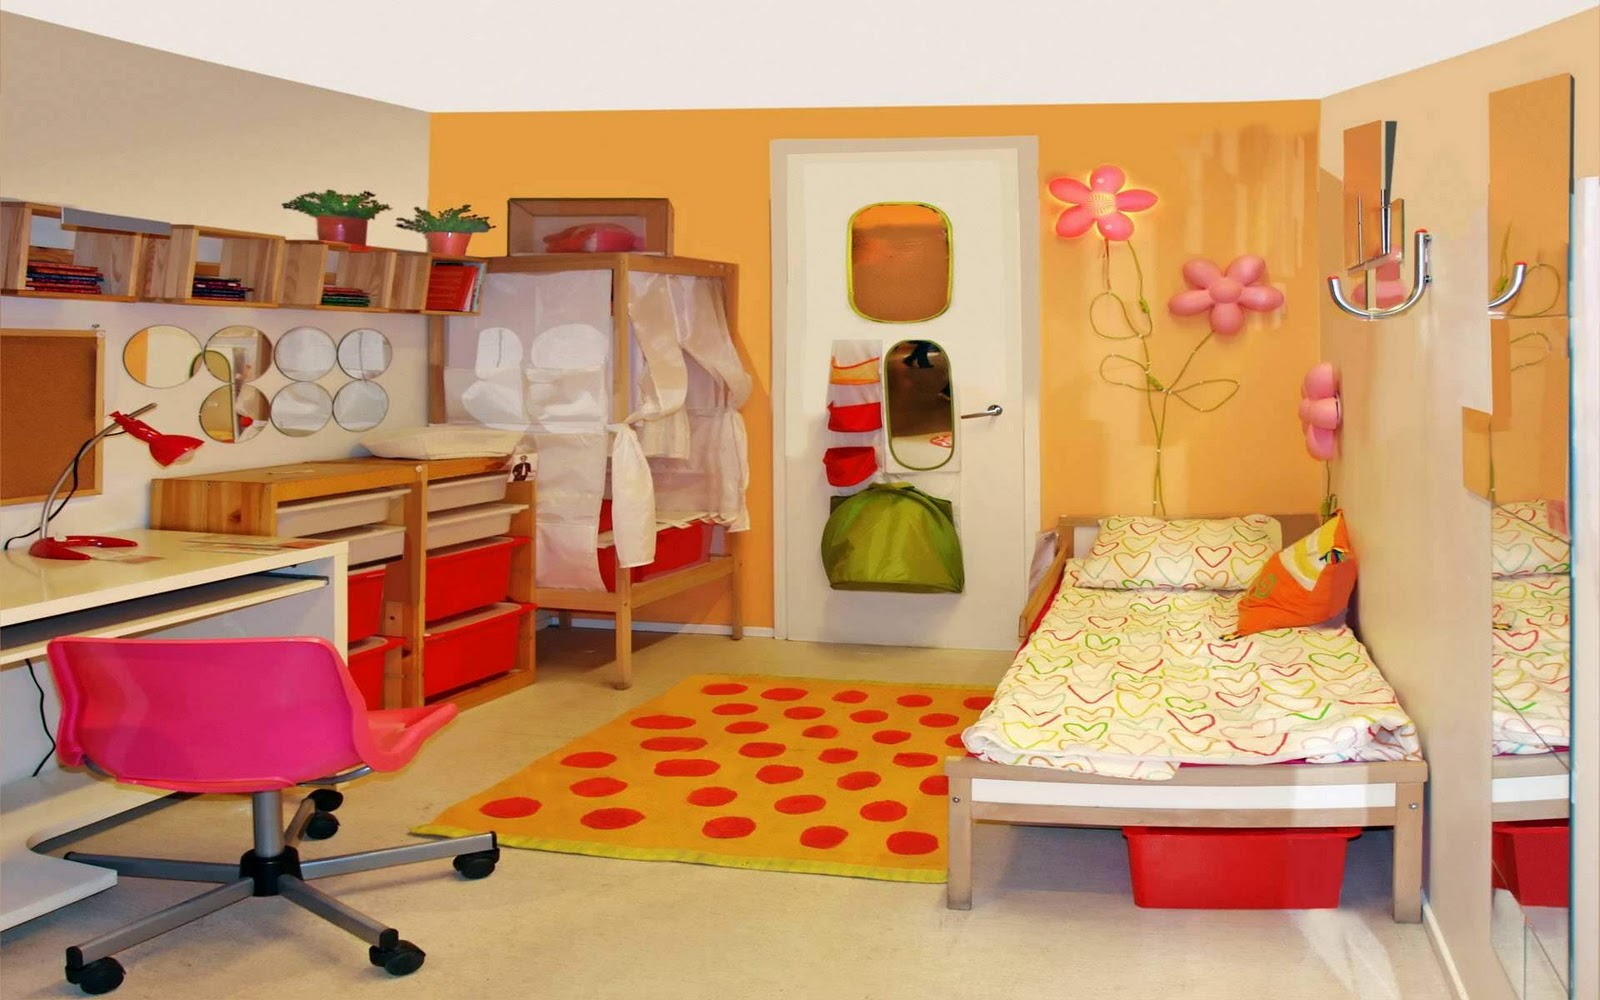 Wallpaper wallpaper ideas for kids room - Beautiful rooms ...